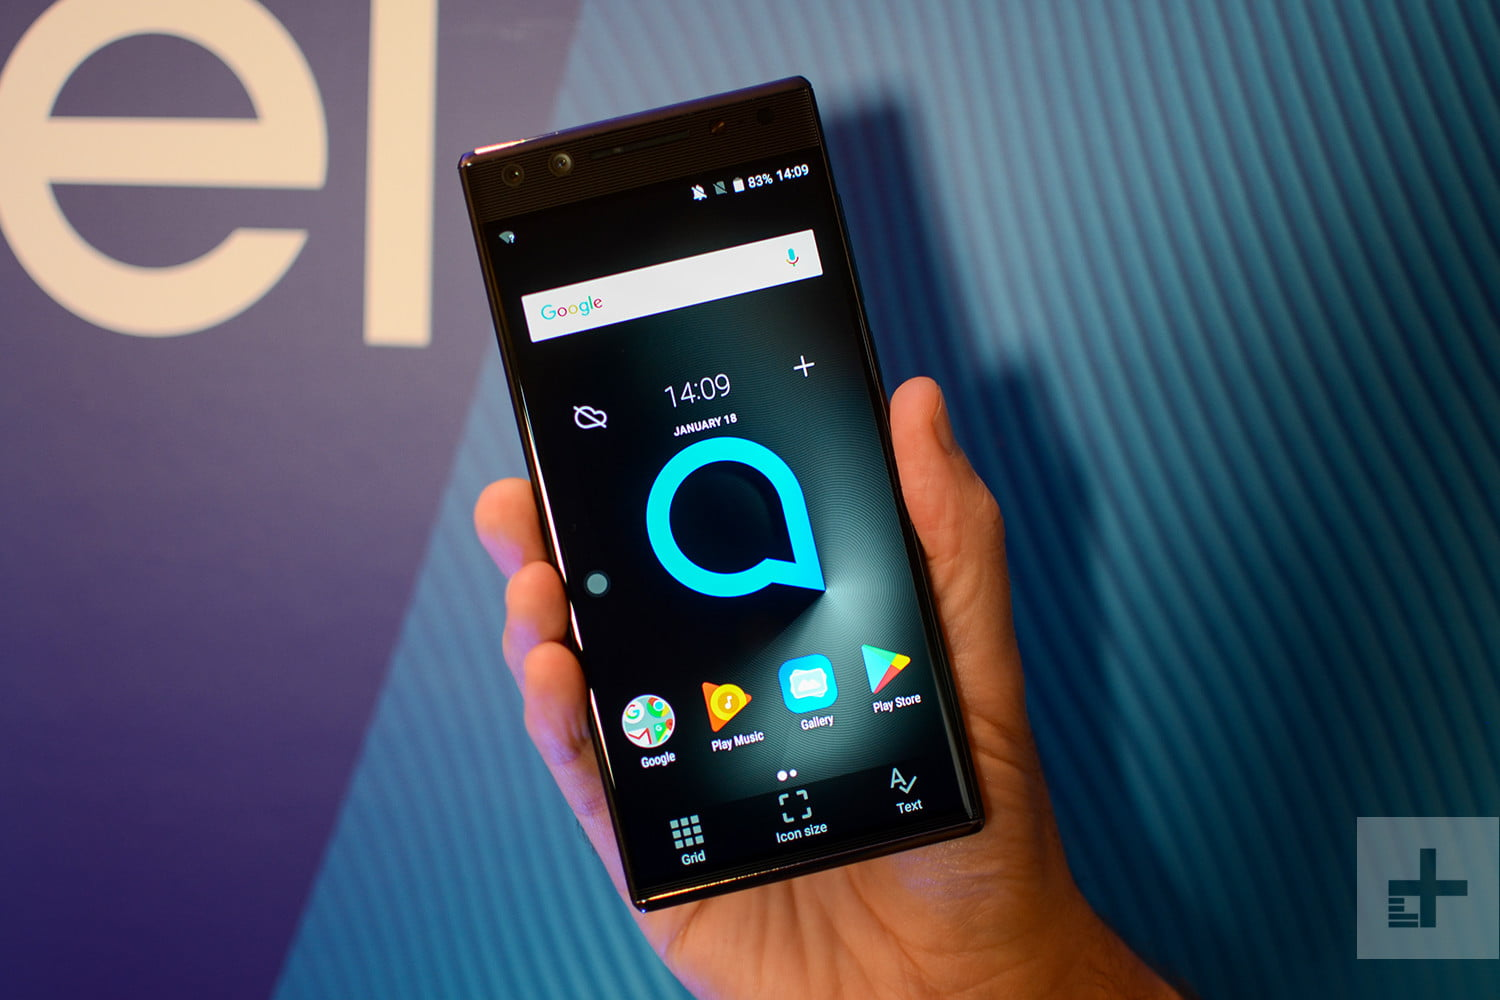 Alcatel's 2018 Phone Lineup Includes Series 1, 3, and 5 Smartphones